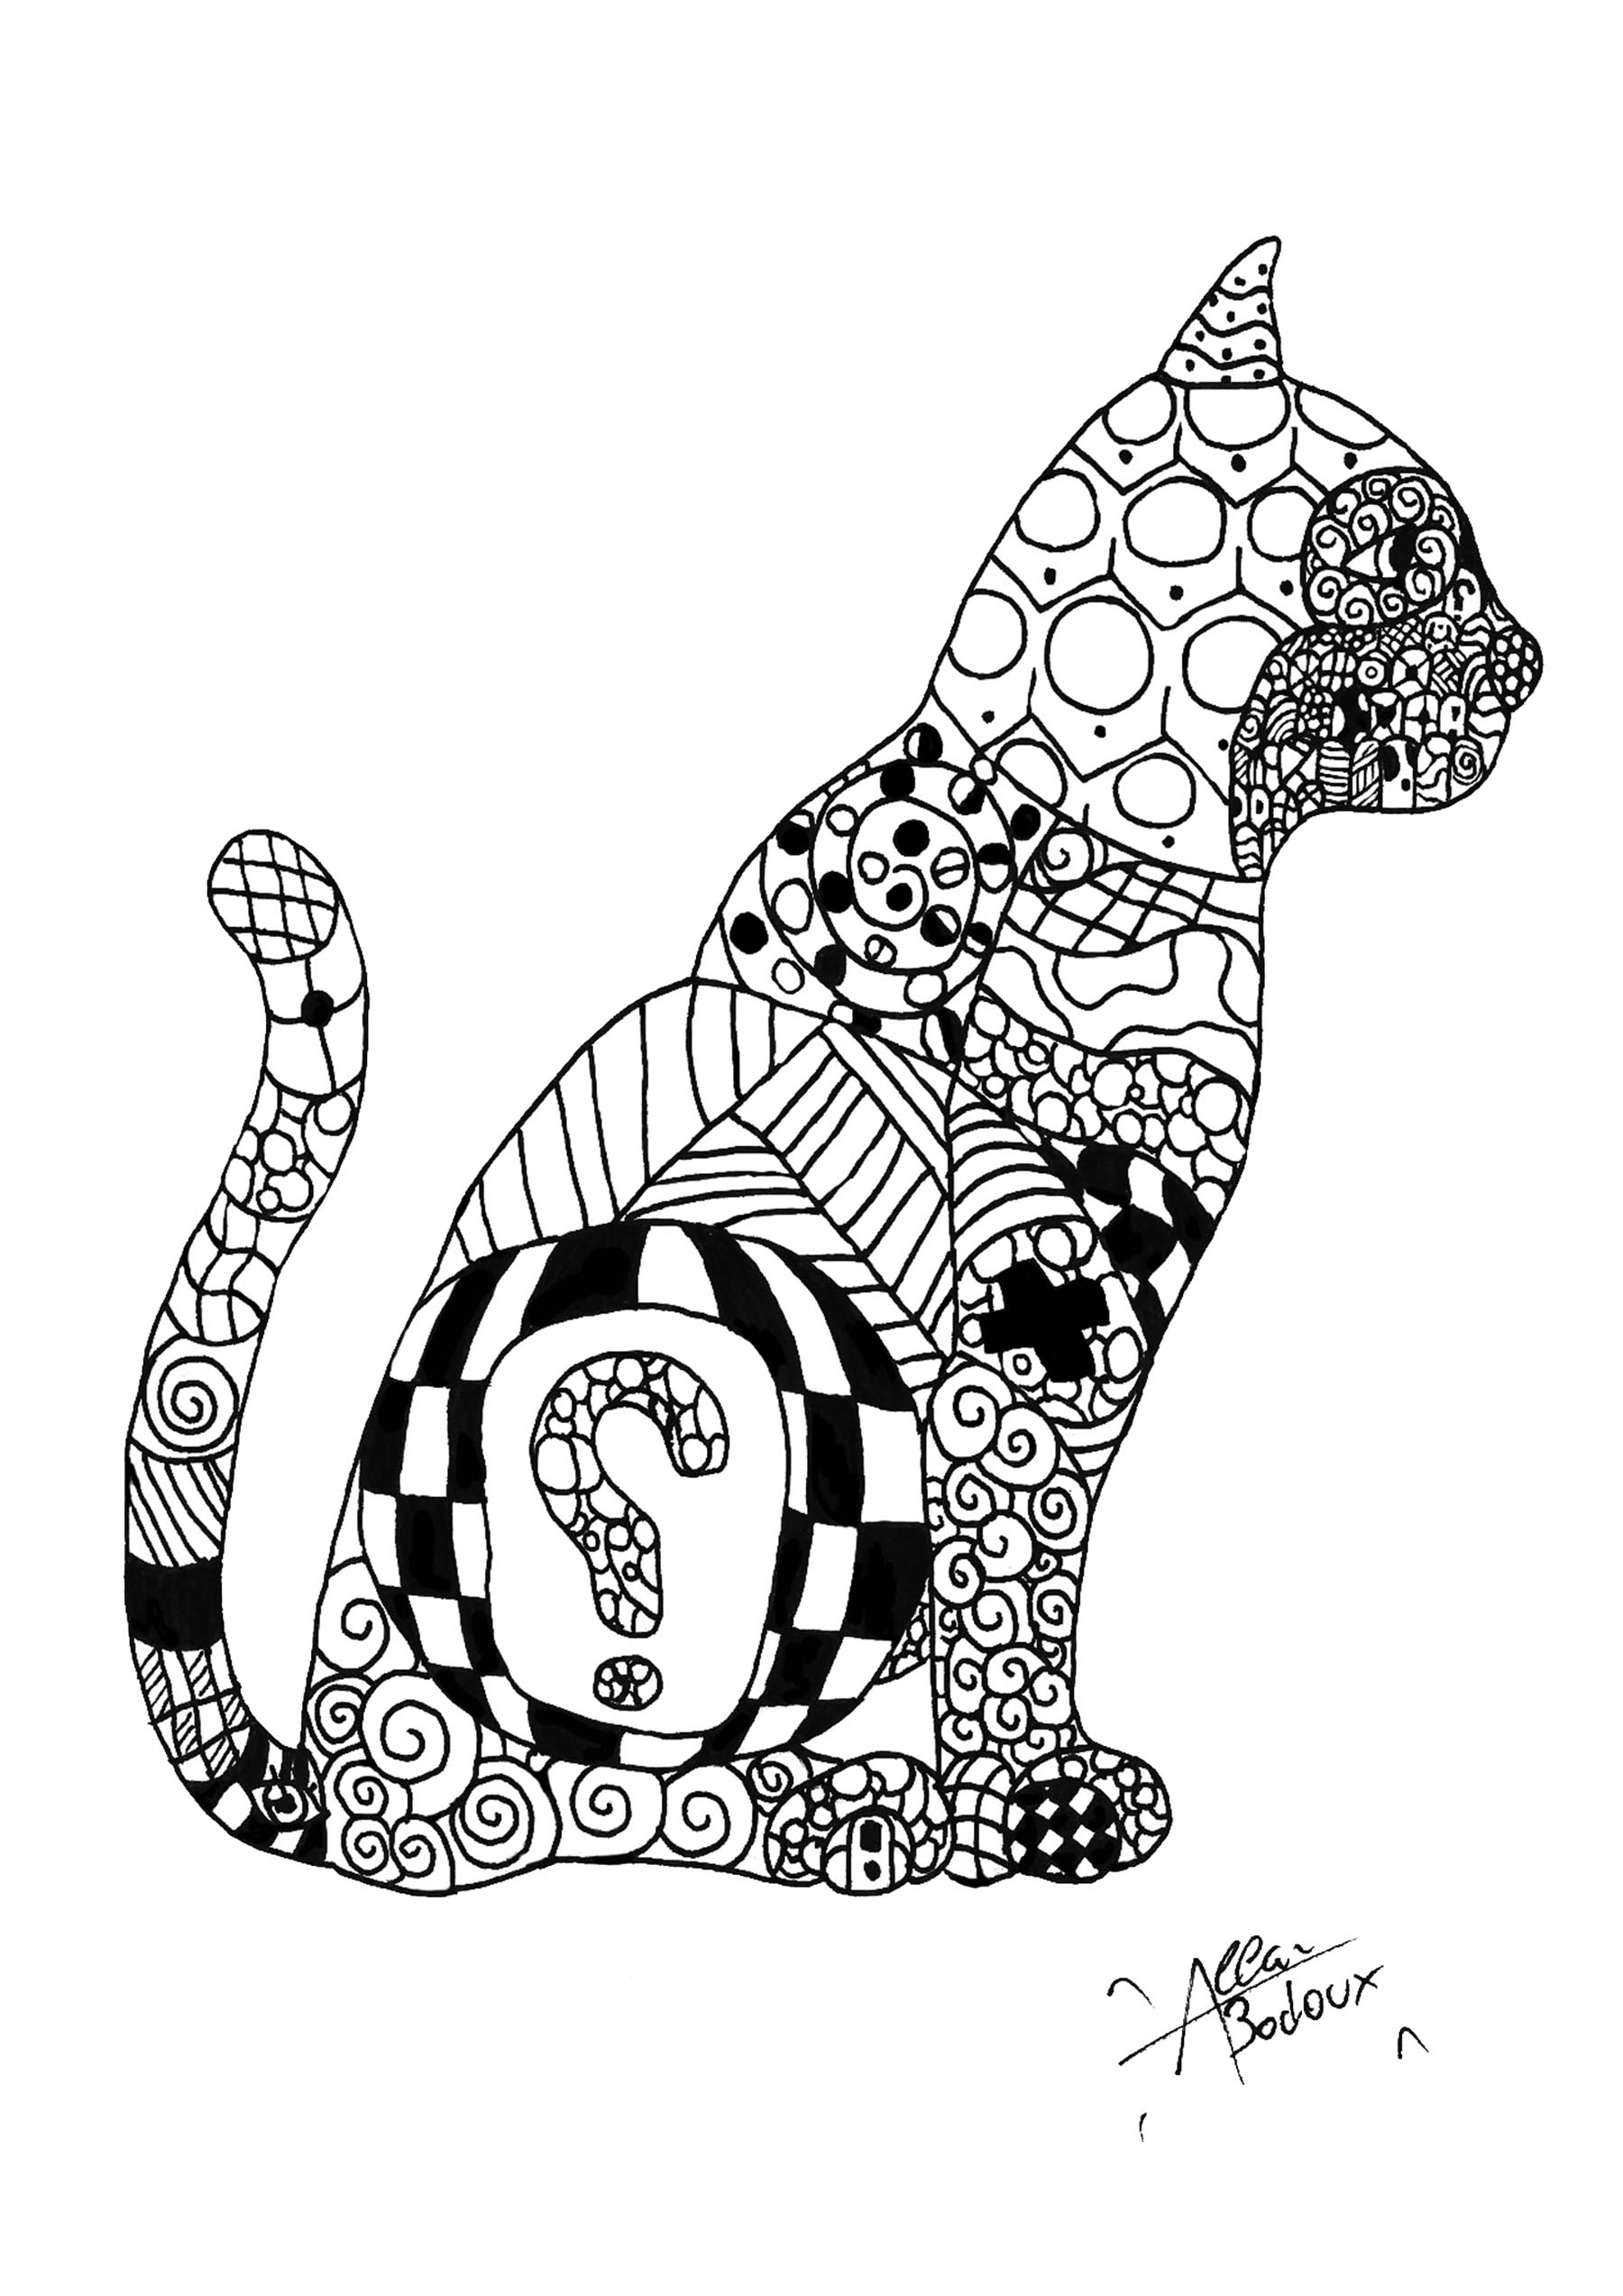 Cat coloring page to download for free : Zentangle patterns in a beautiful drawing representing a cat